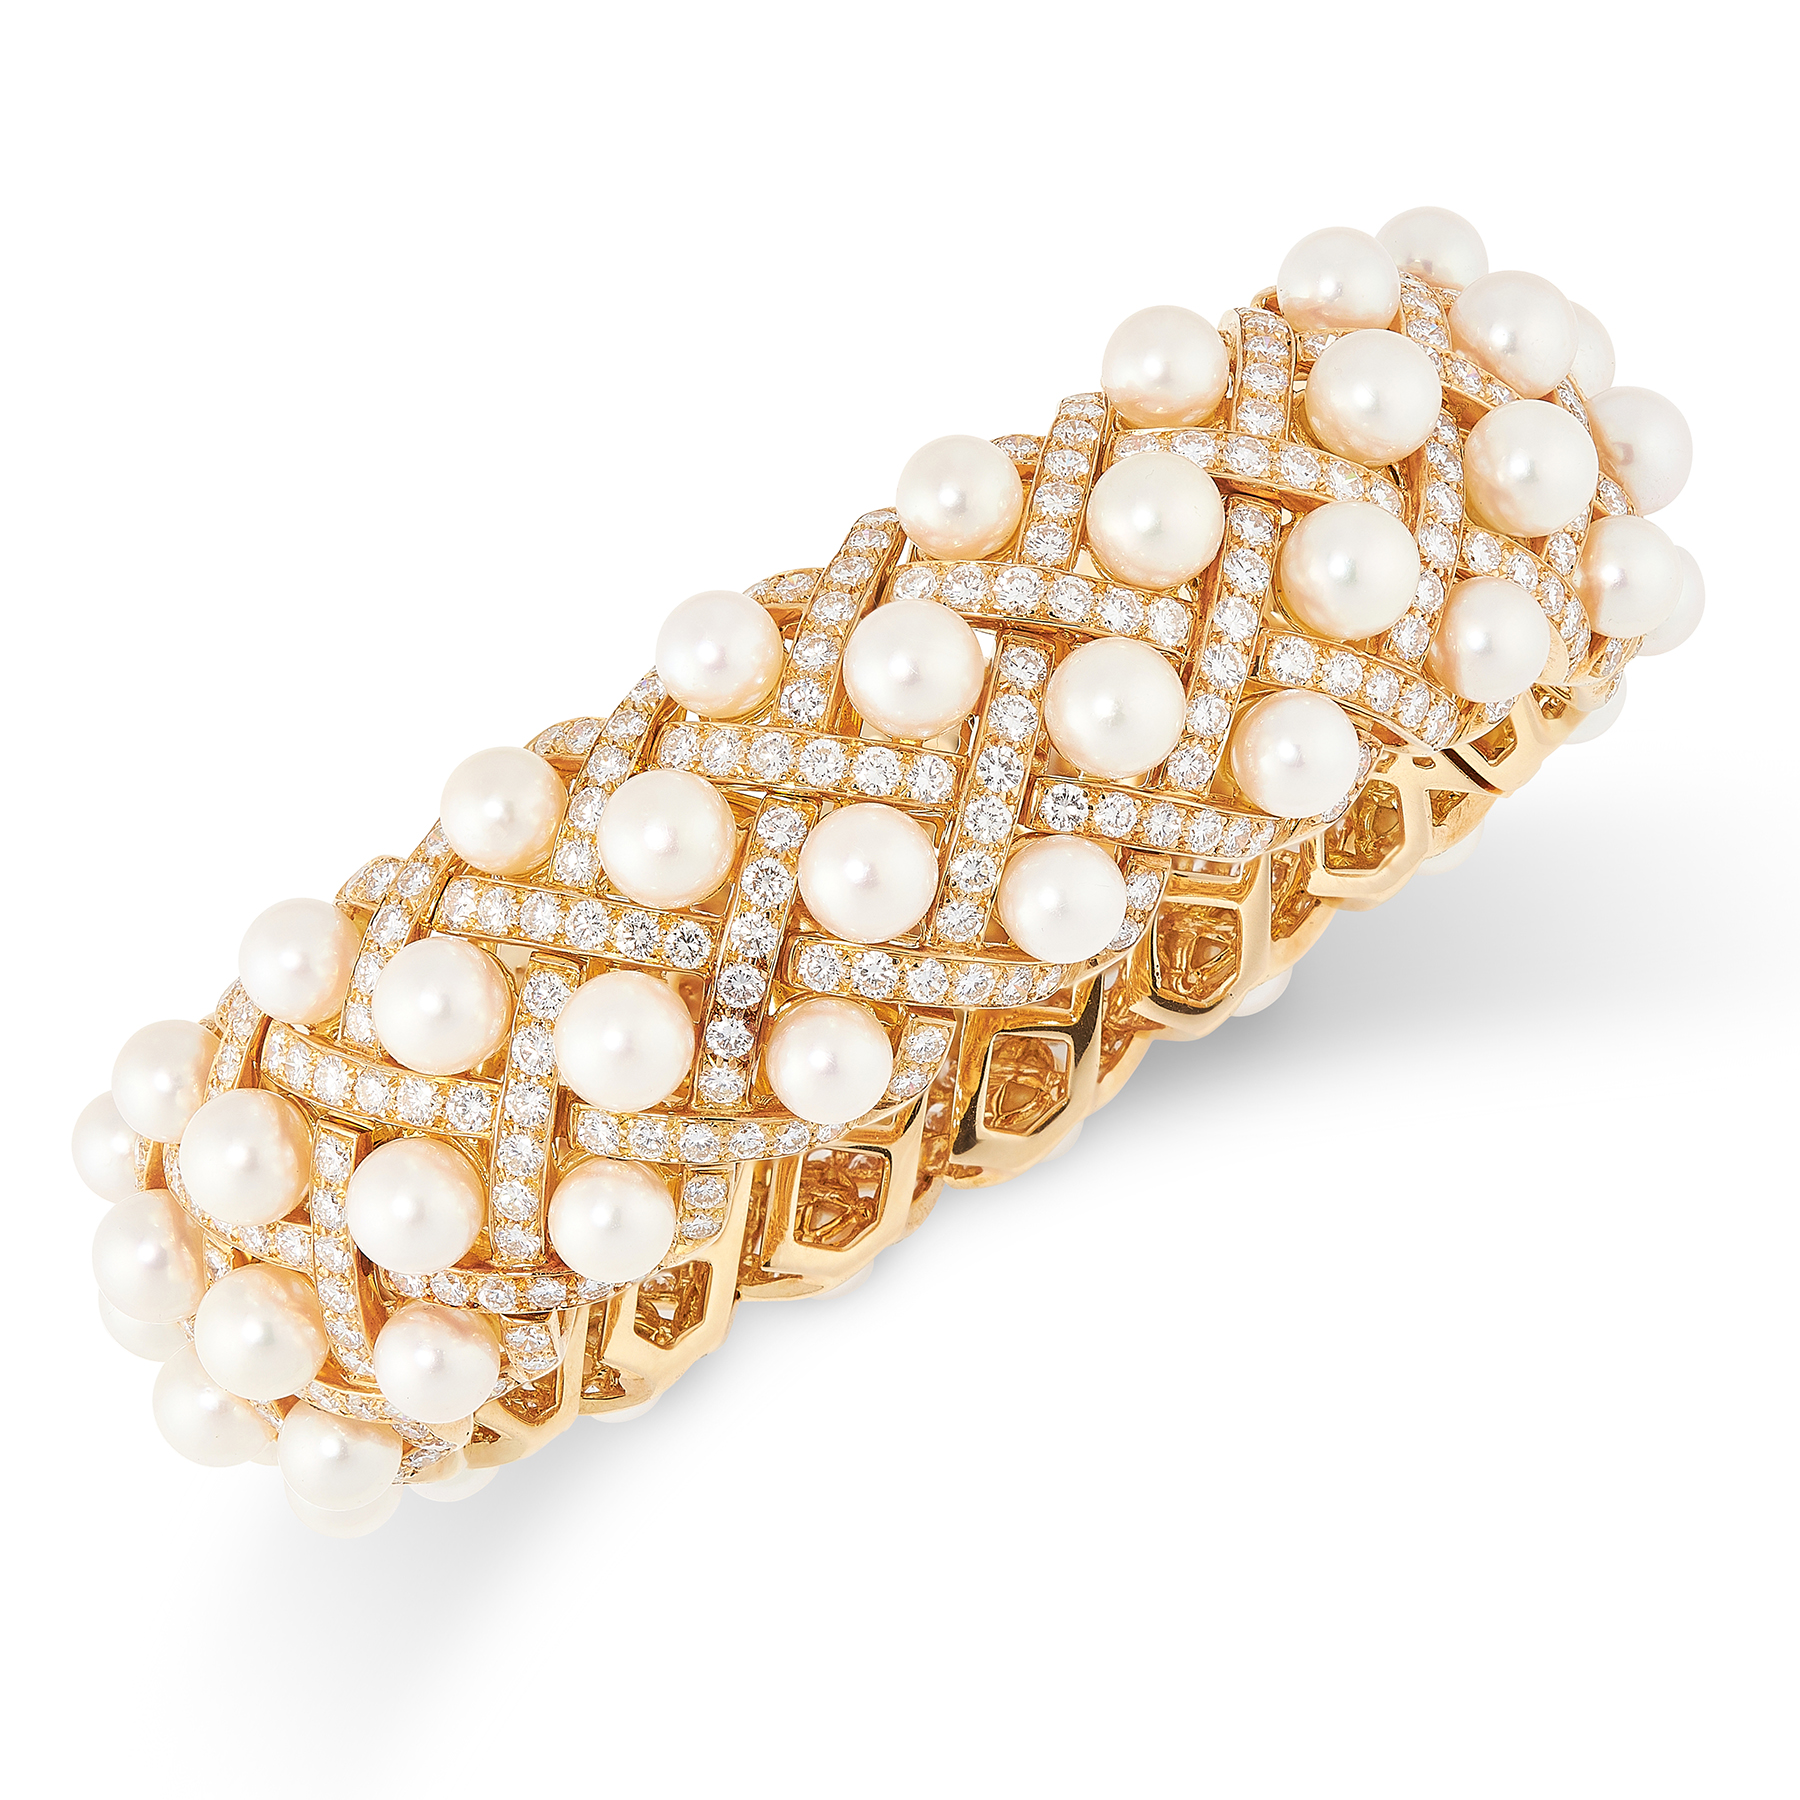 A PEARL AND DIAMOND MATELASSE BRACELET BANGLE, CHANEL in 18ct yellow gold, the articulated body of